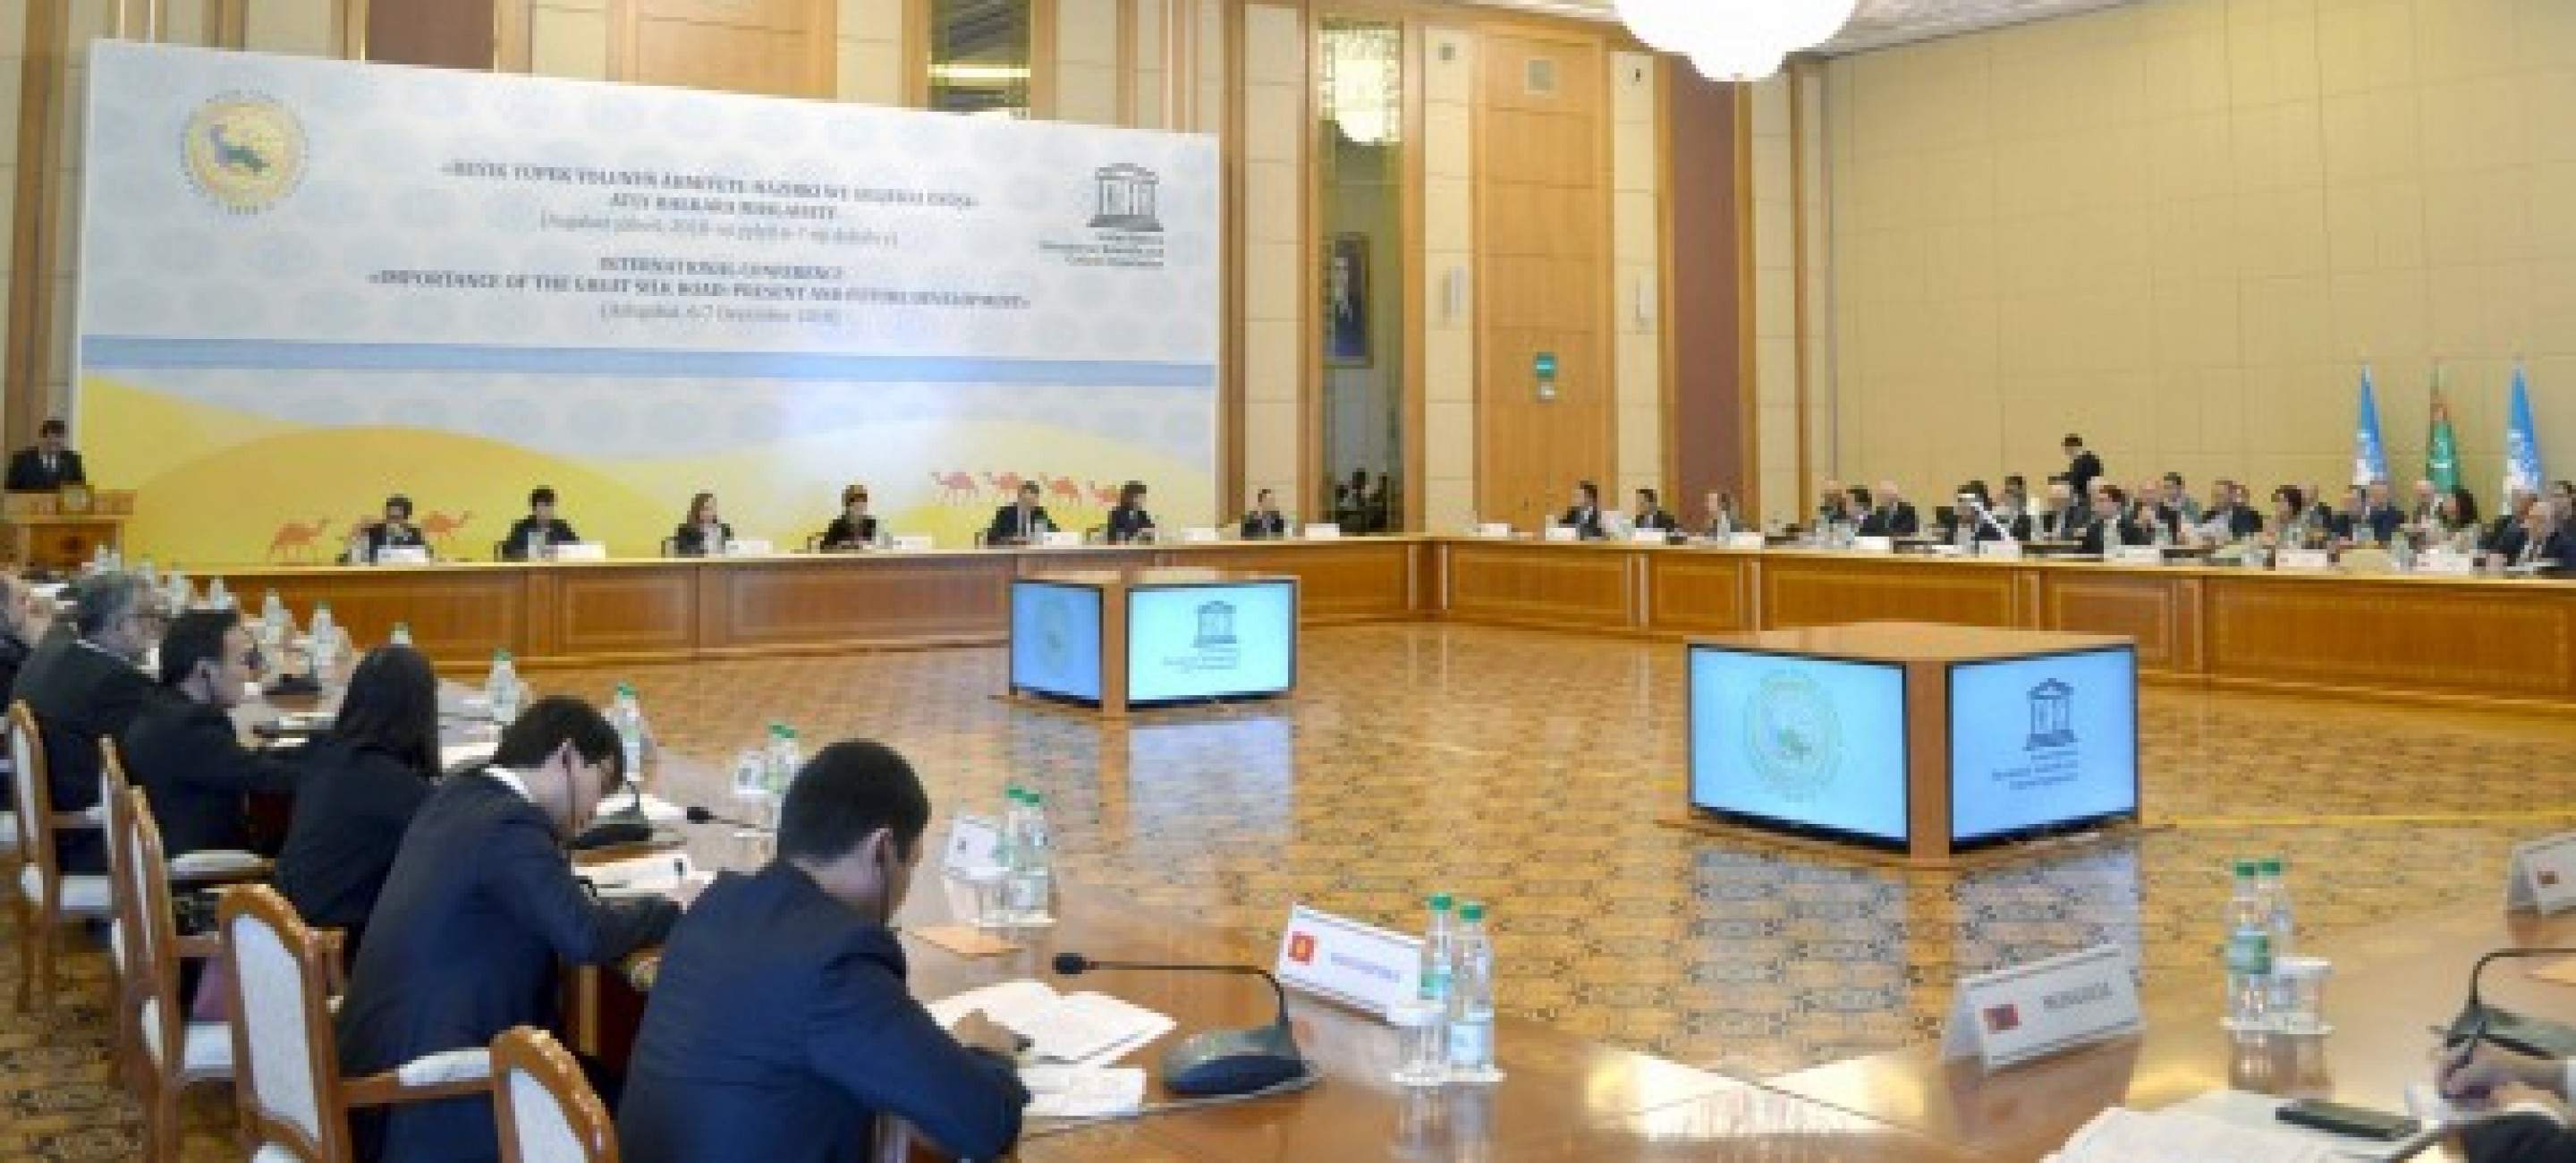 THE PLENARY SESSION OF THE UNESCO INTERNATIONAL MINISTERIAL CONFERENCE WAS HELD